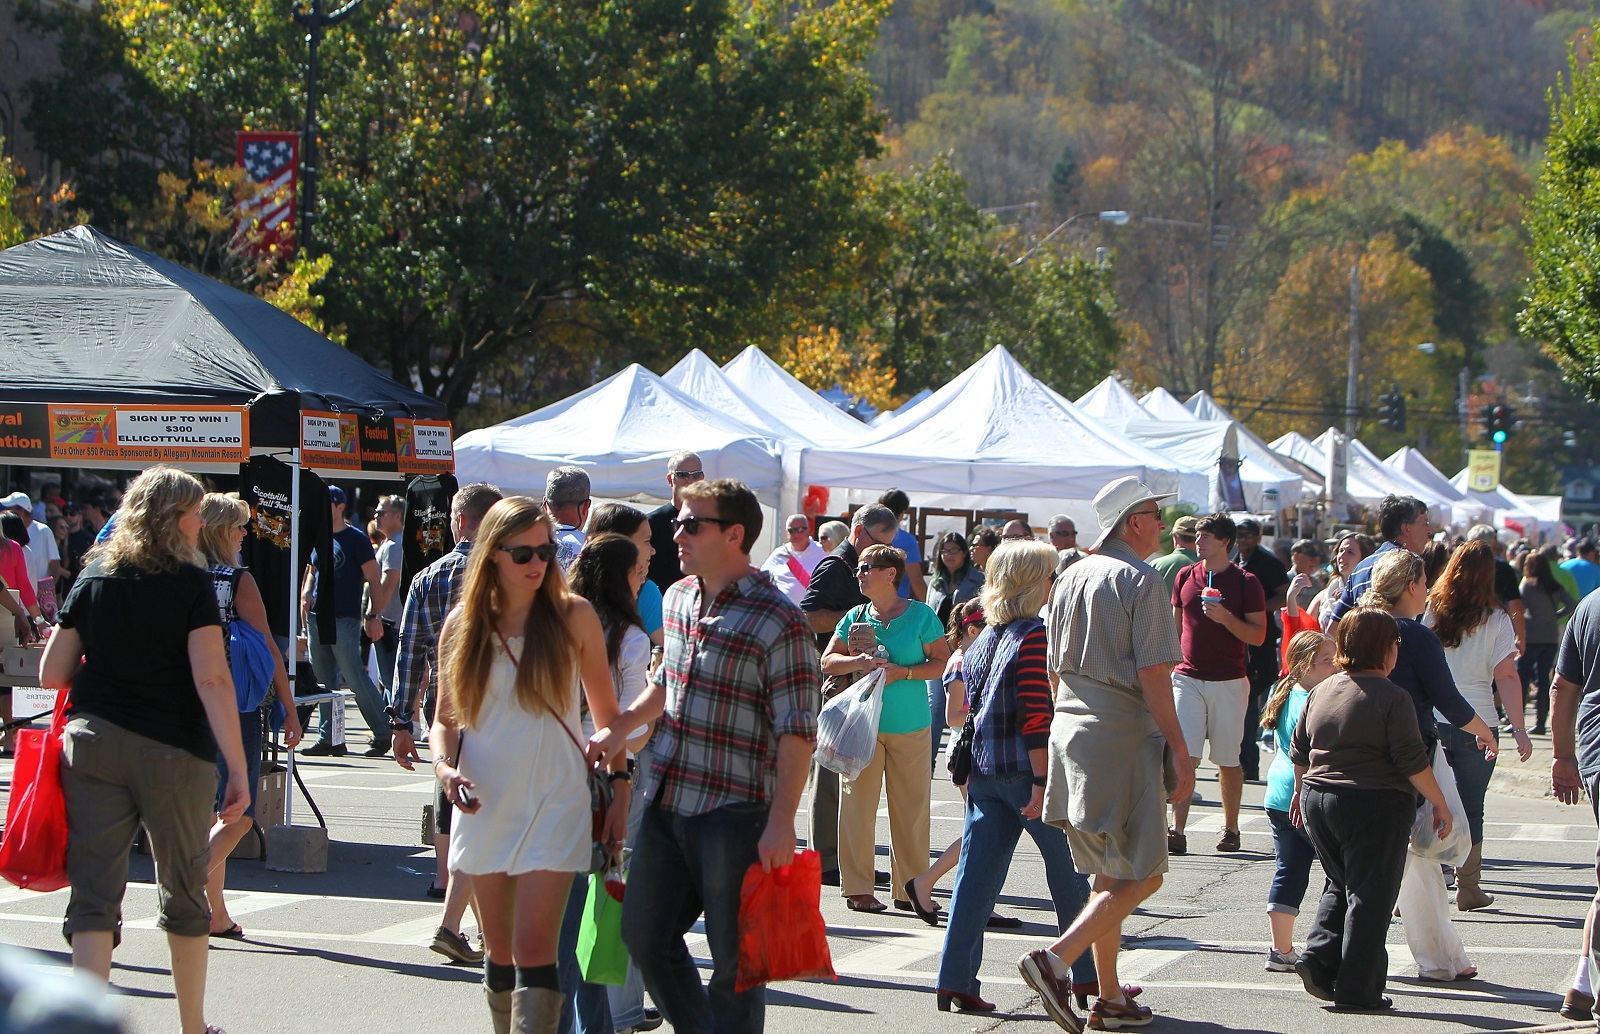 Ellicottville will hold its popular fall festival on Columbus Day weekend. (Mark Mulville/Buffalo News file photo)